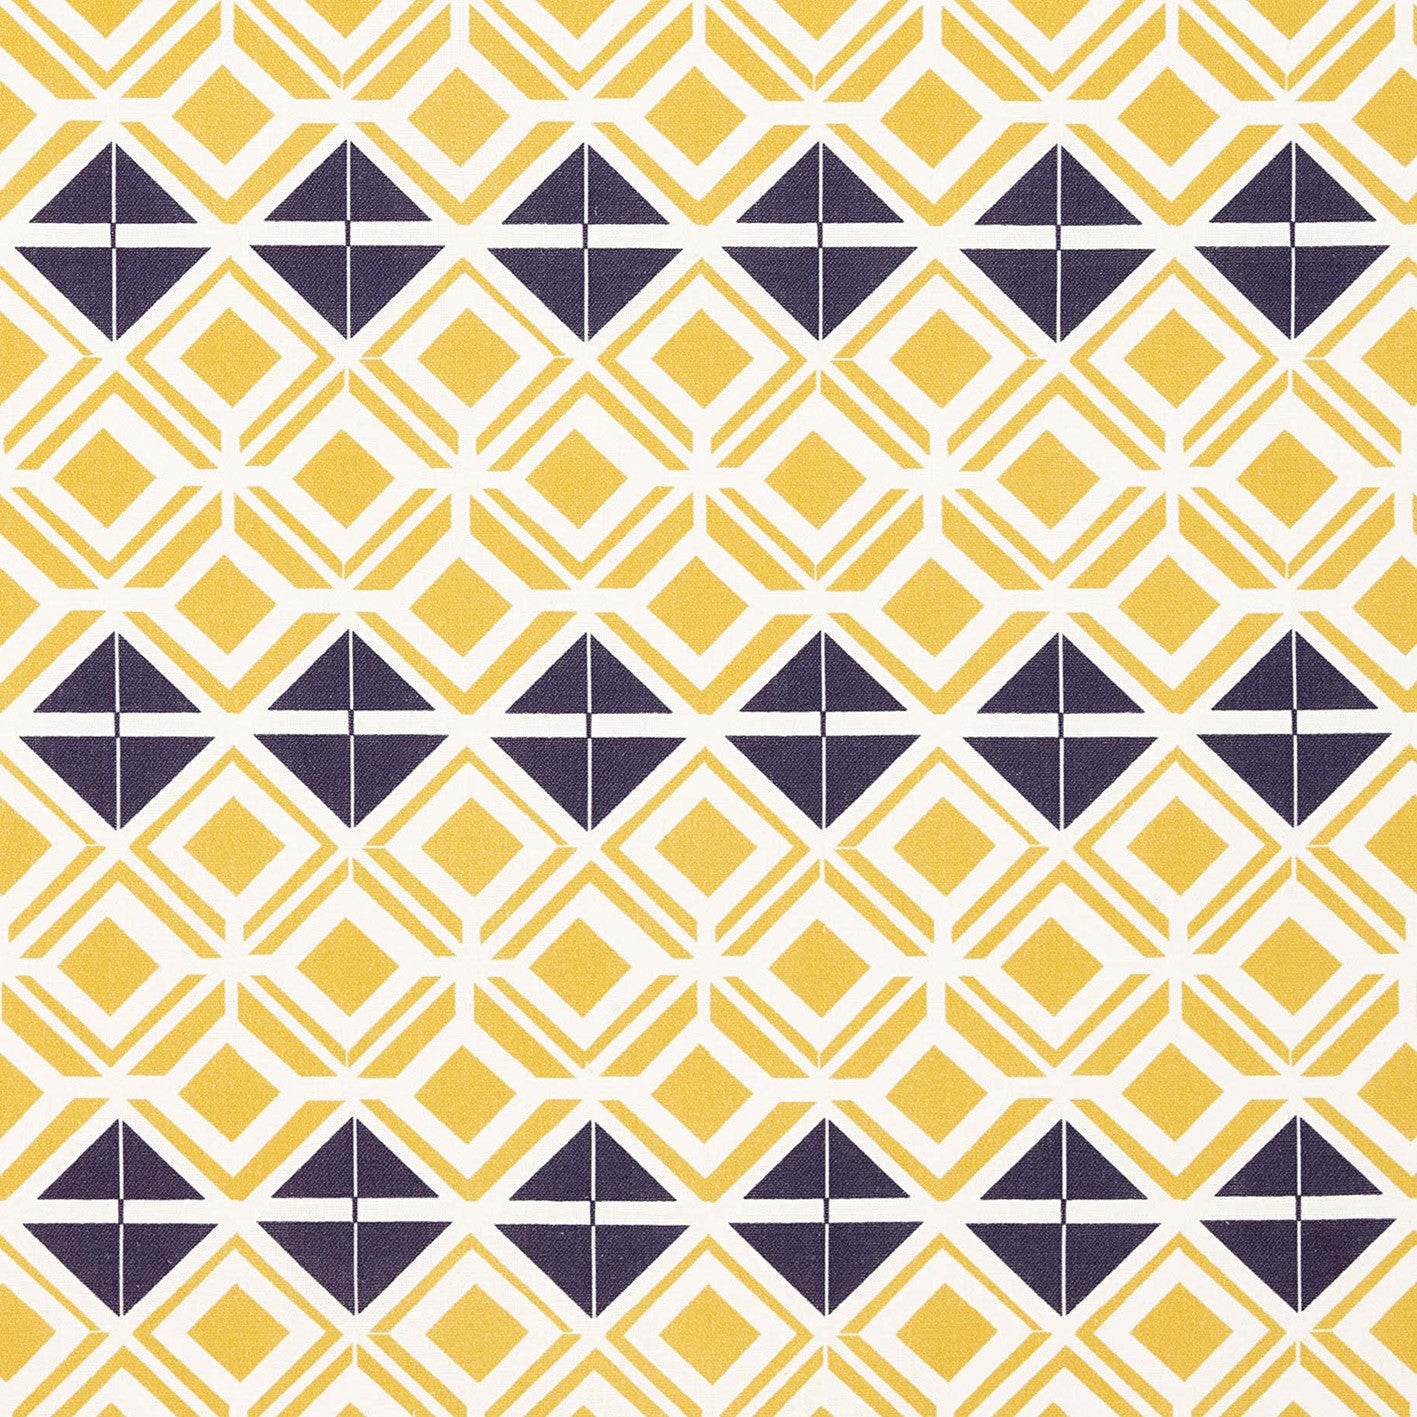 Glasswork Geometric Pattern Cotton Linen Fabric by the Meter in Maize Yellow & Aubergine Purple